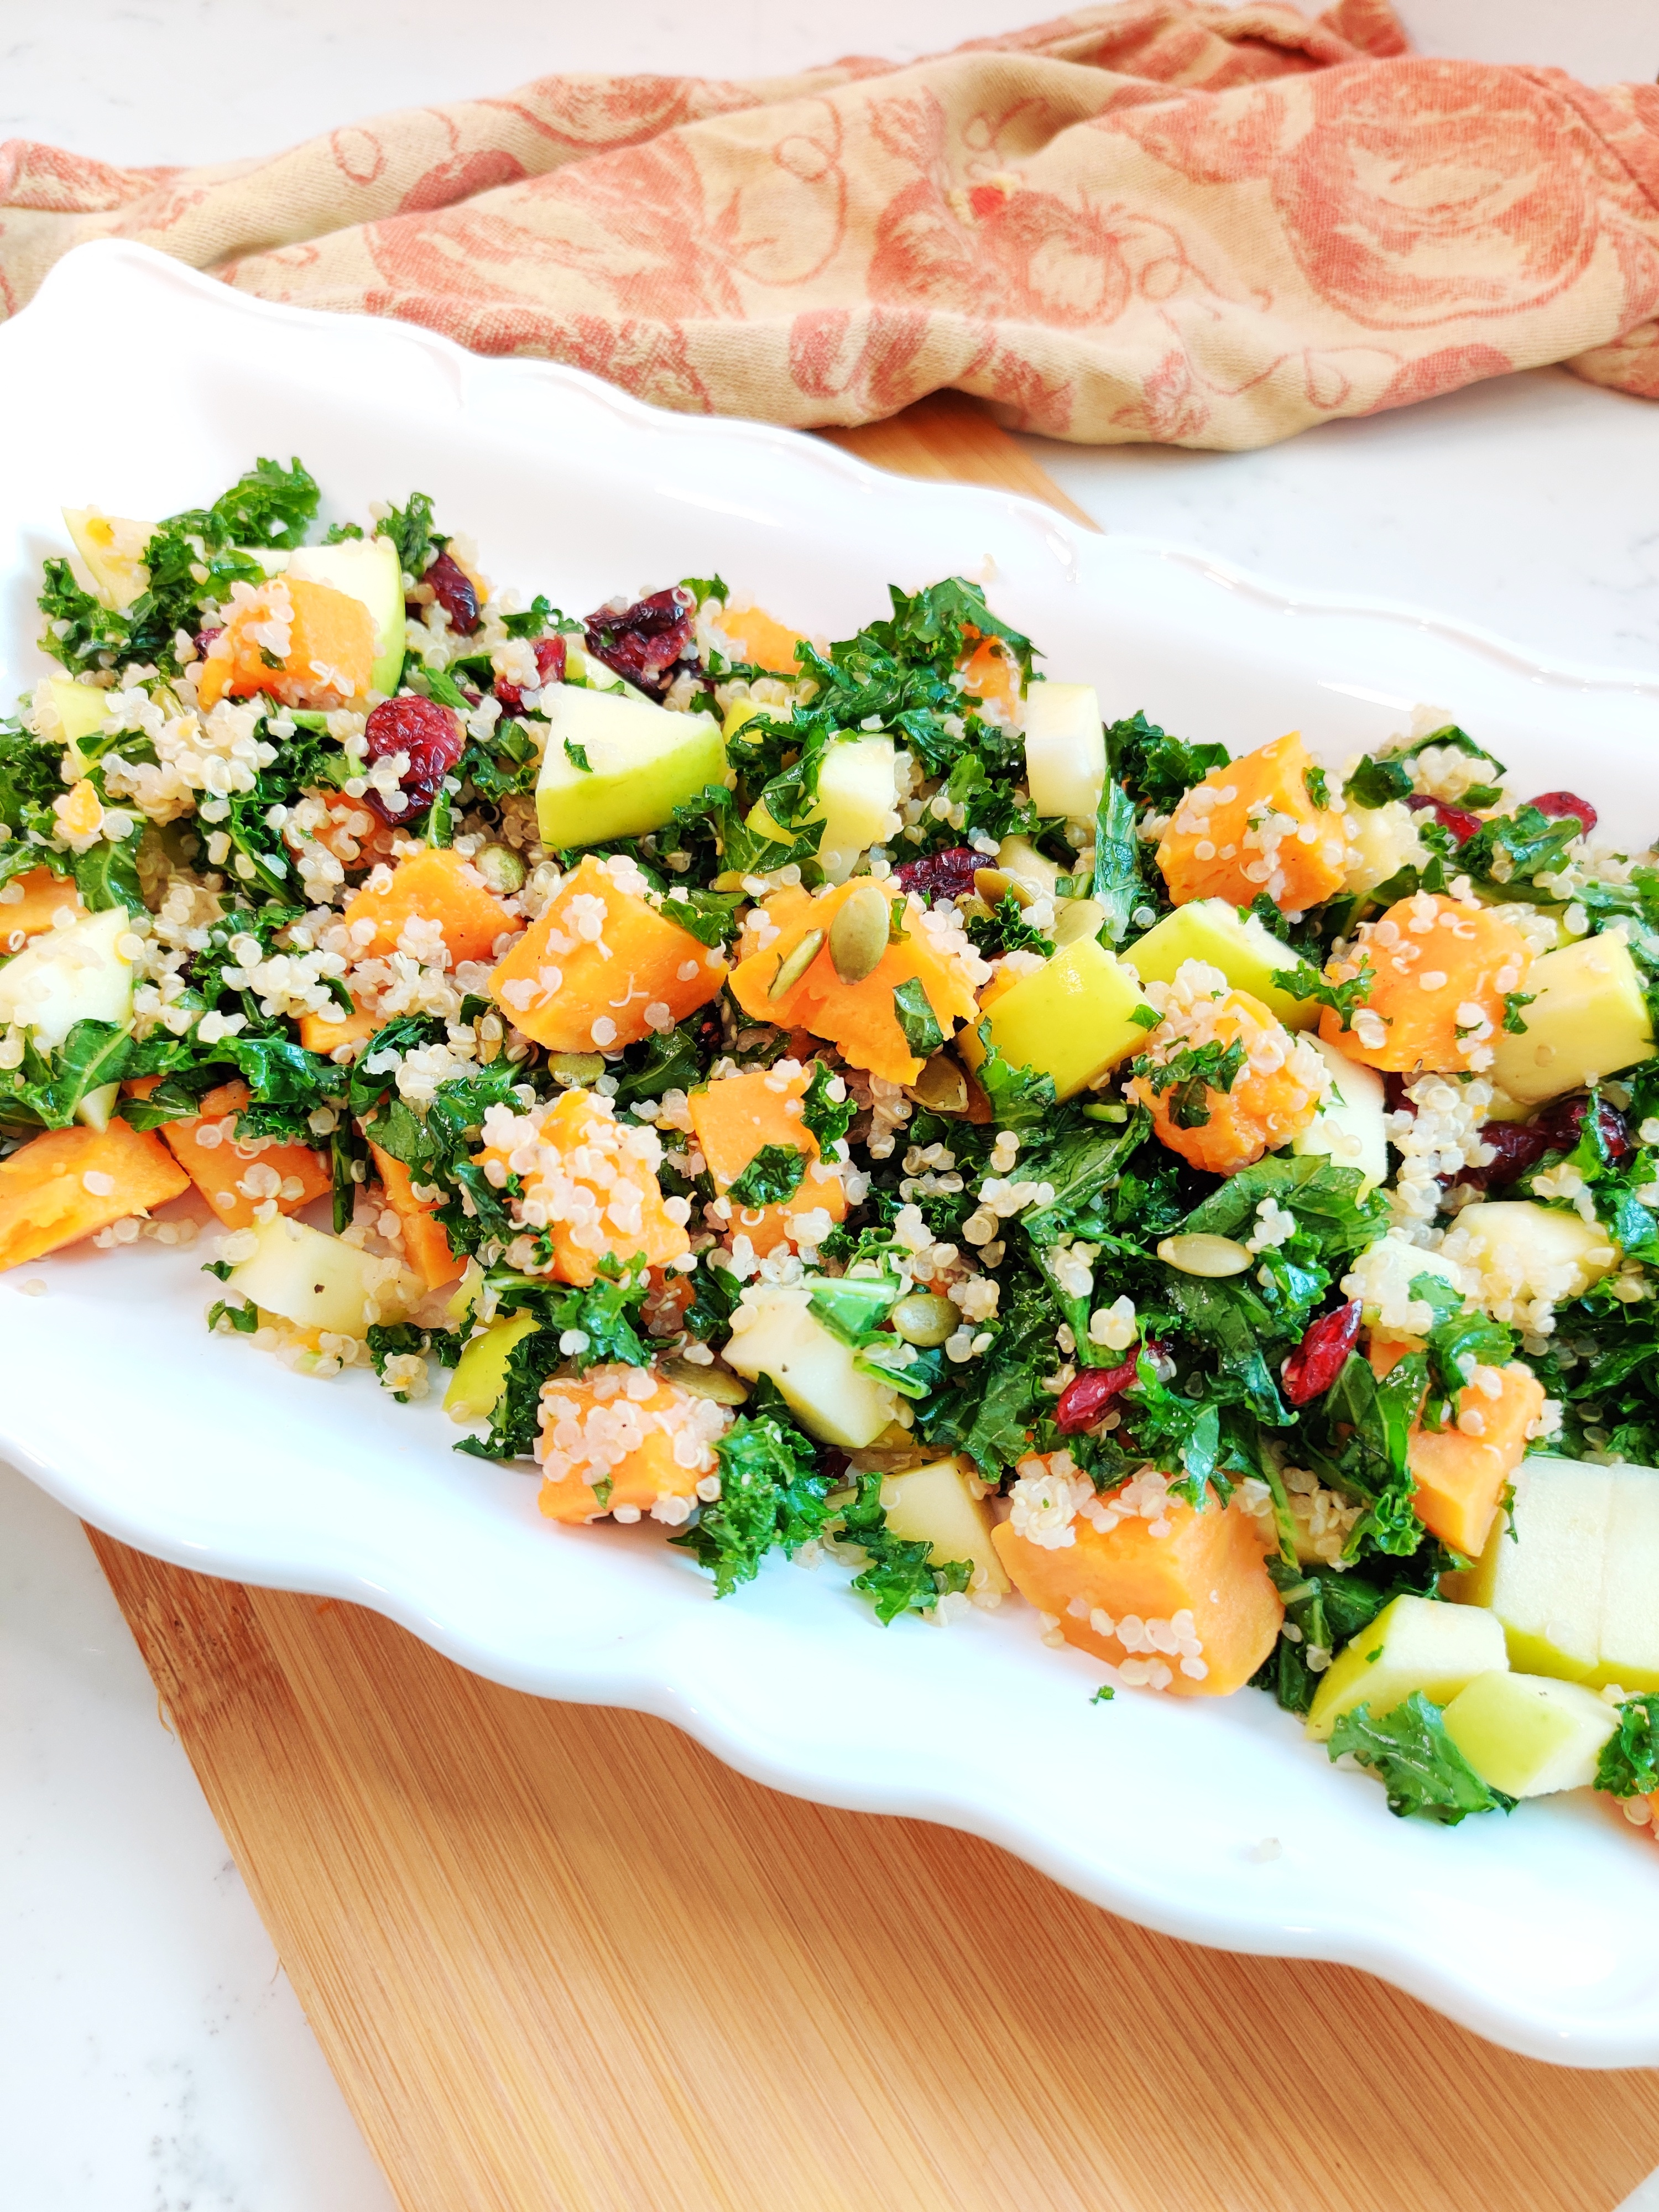 Sweet Potato, Kale, and Quinoa Salad